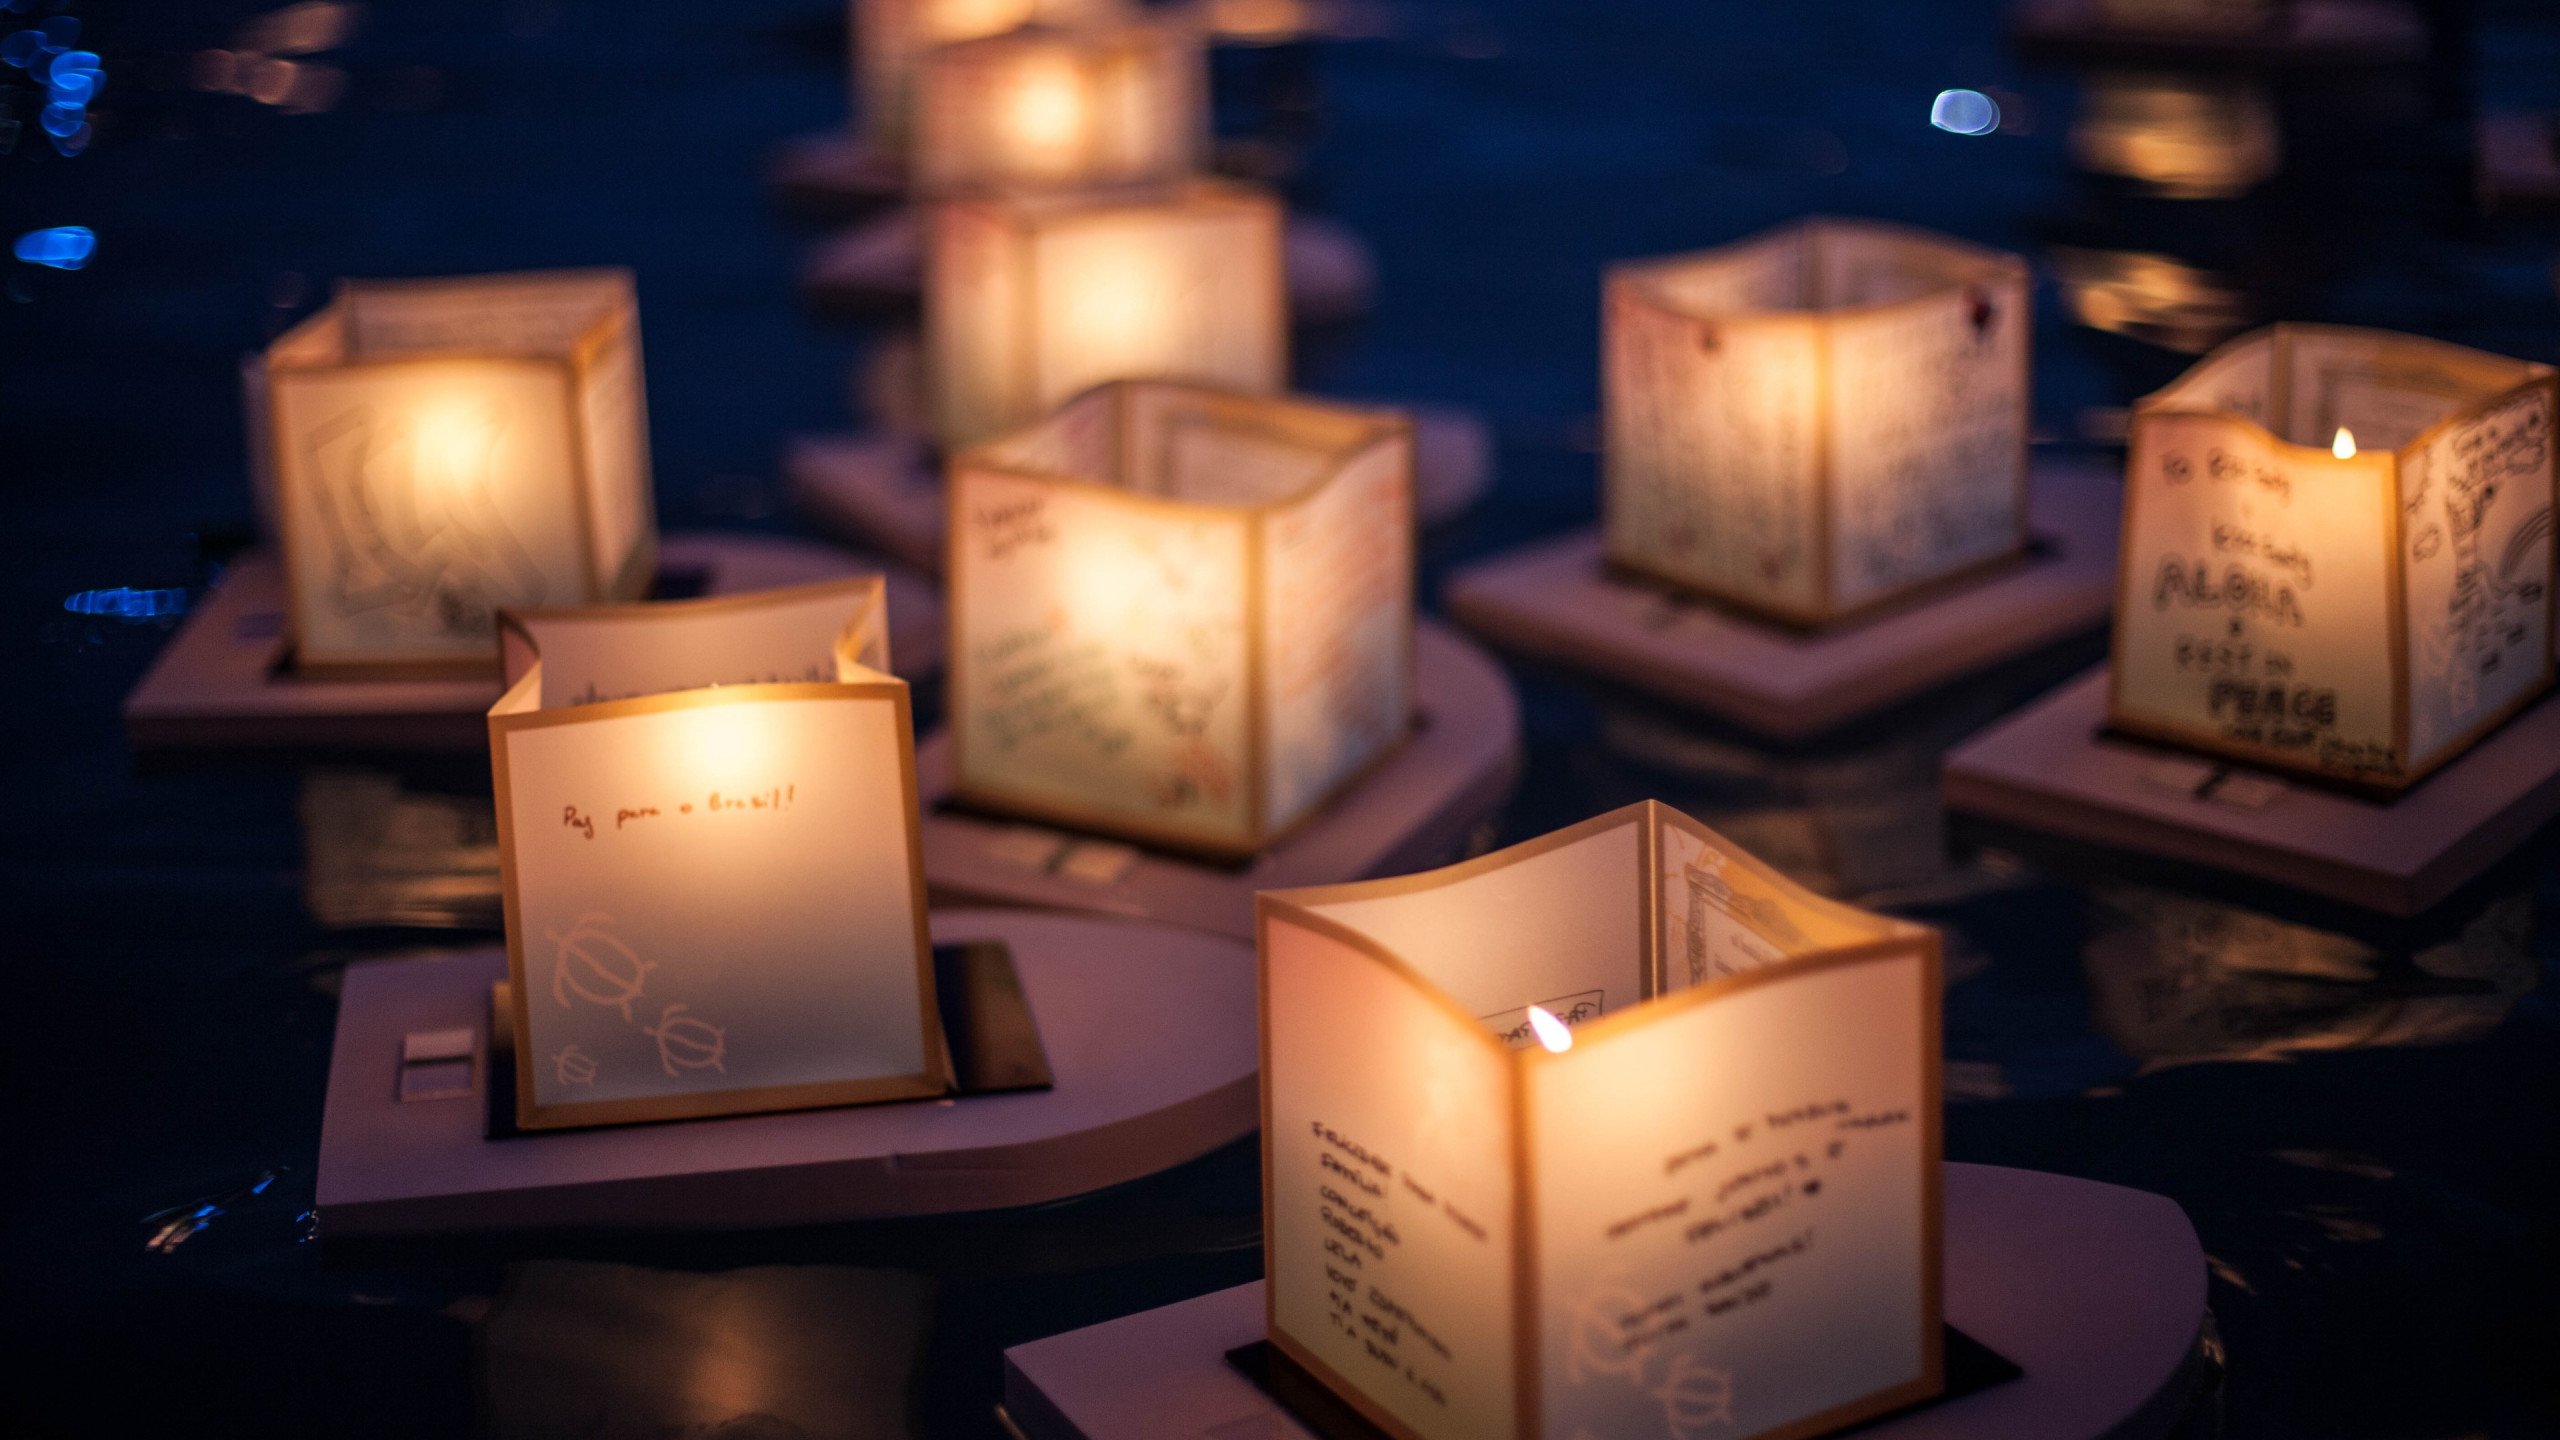 The Lantern Floating Ceremony wallpaper 2560x1440